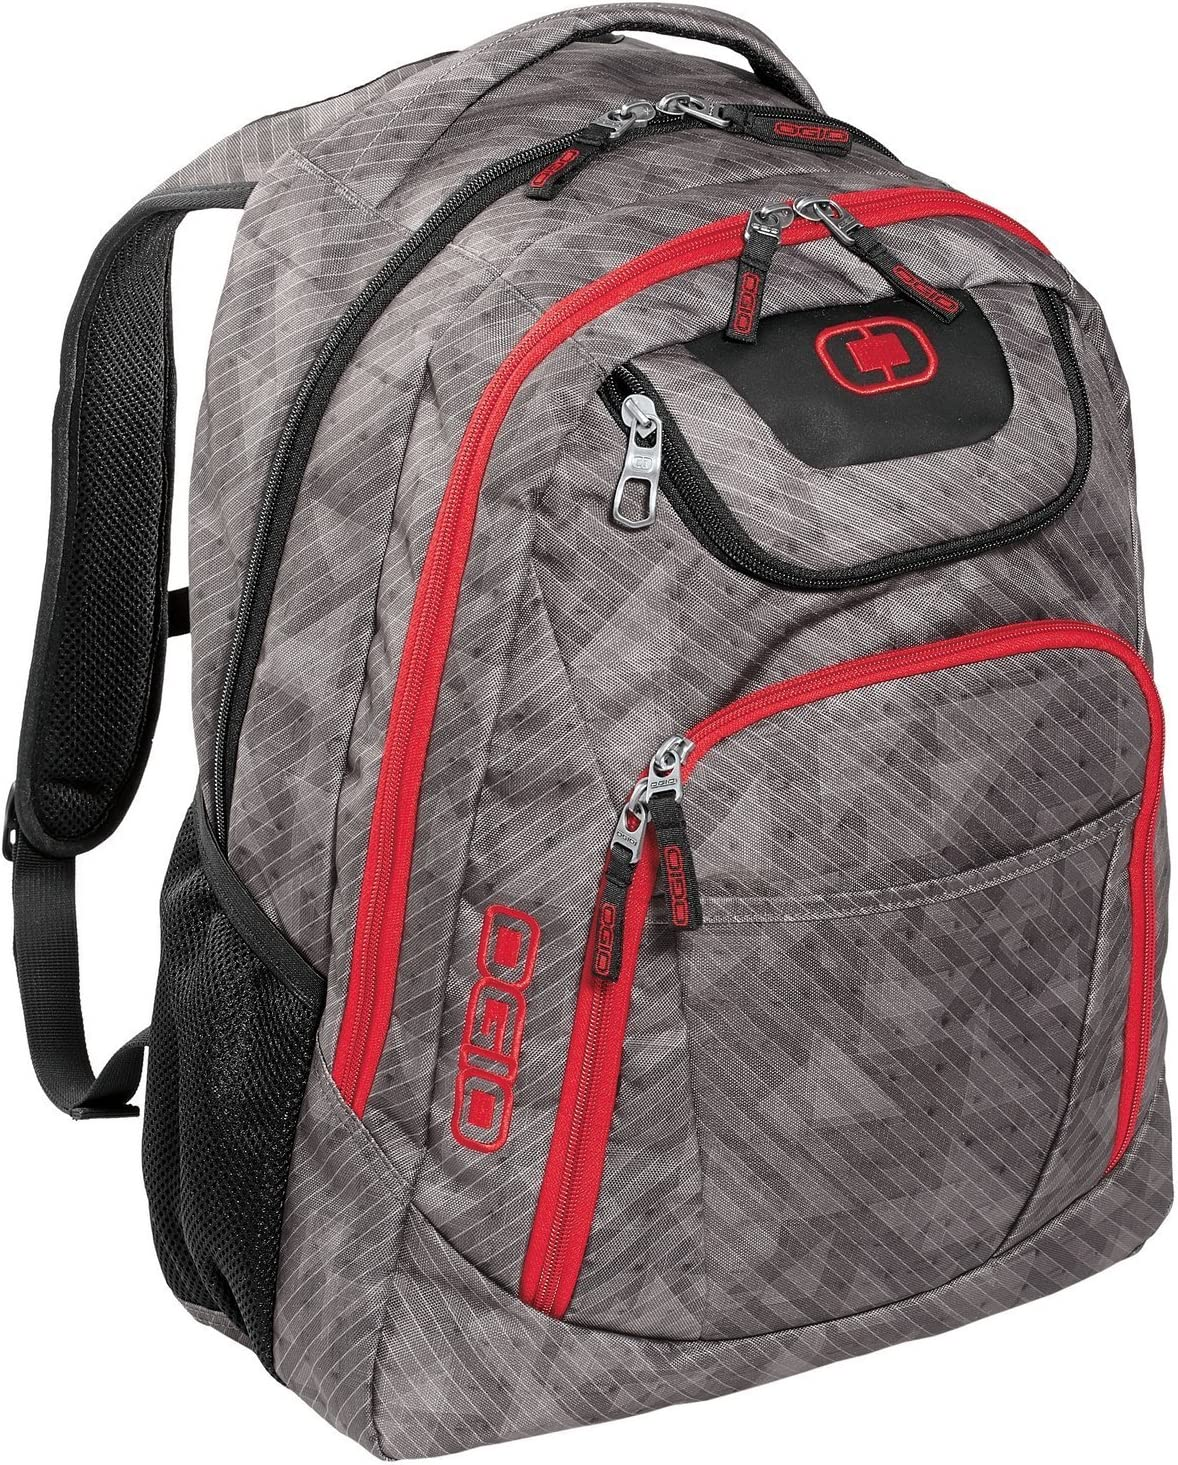 "OGIO 411069 - Cynderfunk/Red Business Excelsior 17"" Laptop Backpack/Rucksack, Cynderfunk/Red"